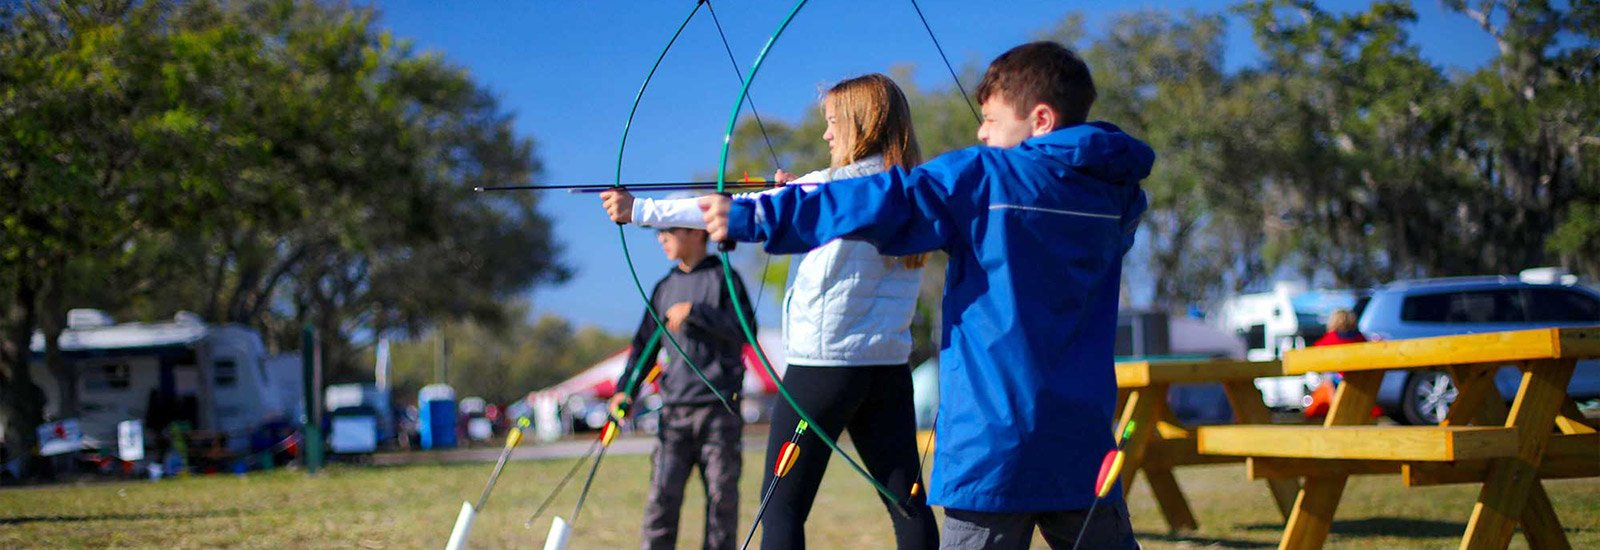 Welcome to Benson Archery - Benson Archery